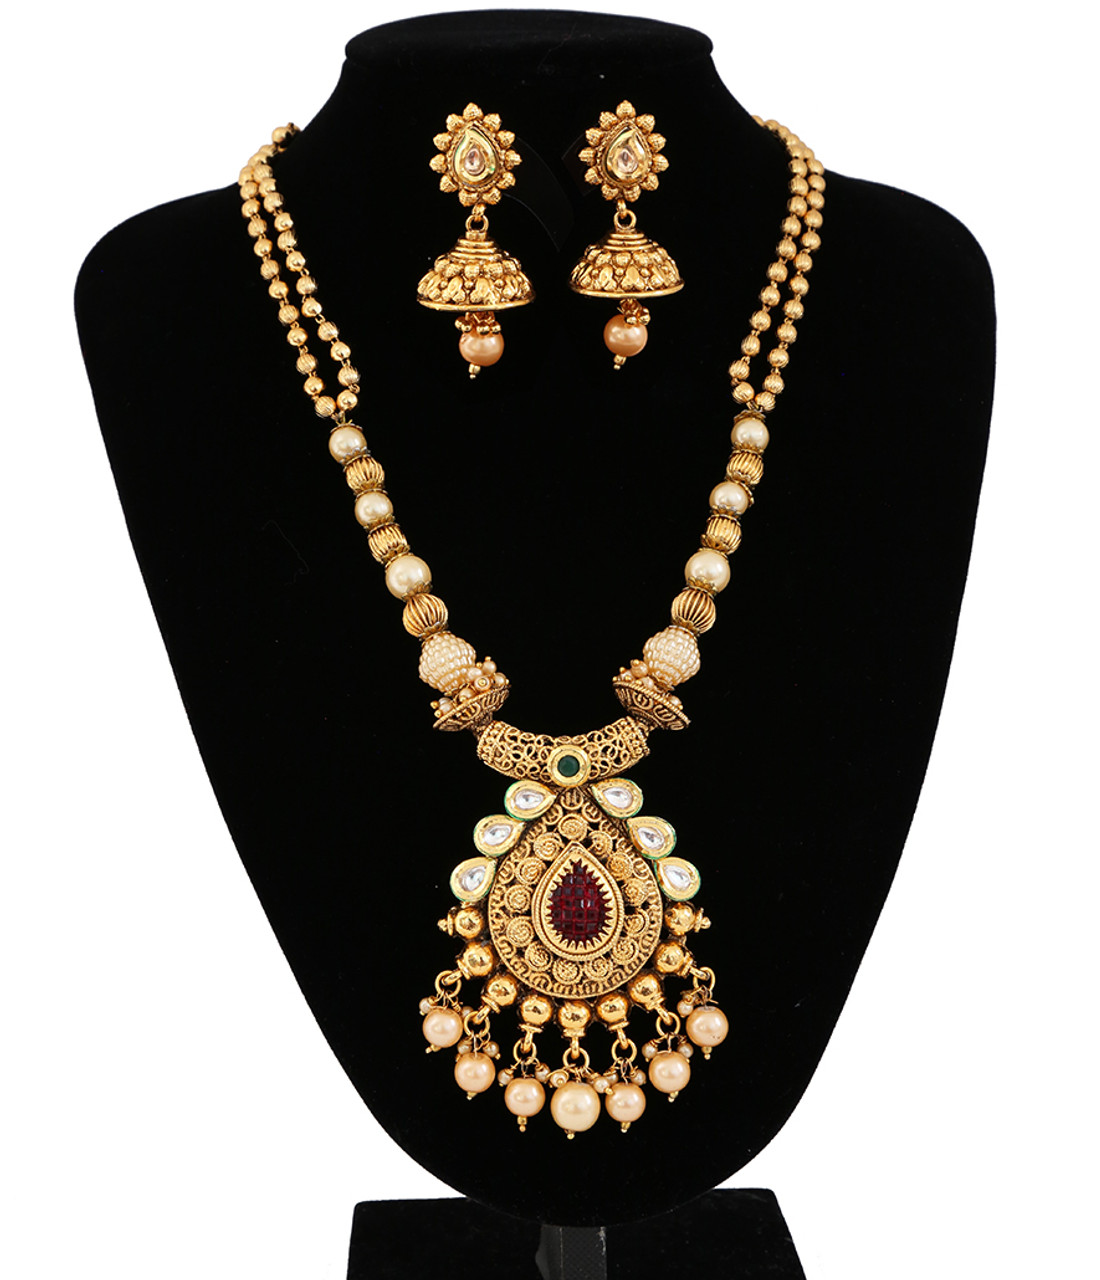 New Indian Antique Look Gold Plated Pearl Multicolor Stone